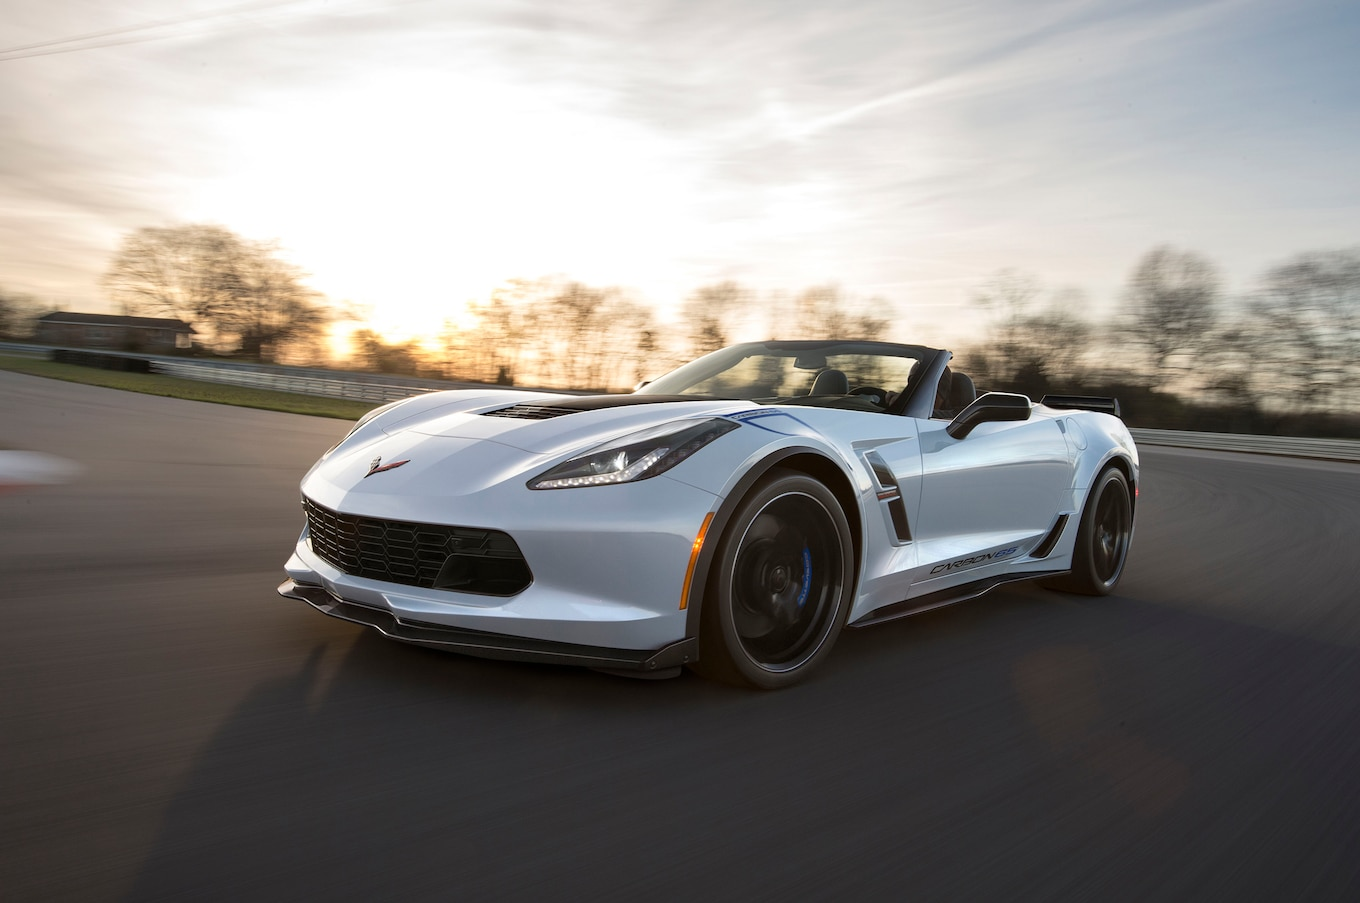 2018 Chevrolet Corvette Reviews And Rating  Motor Trend